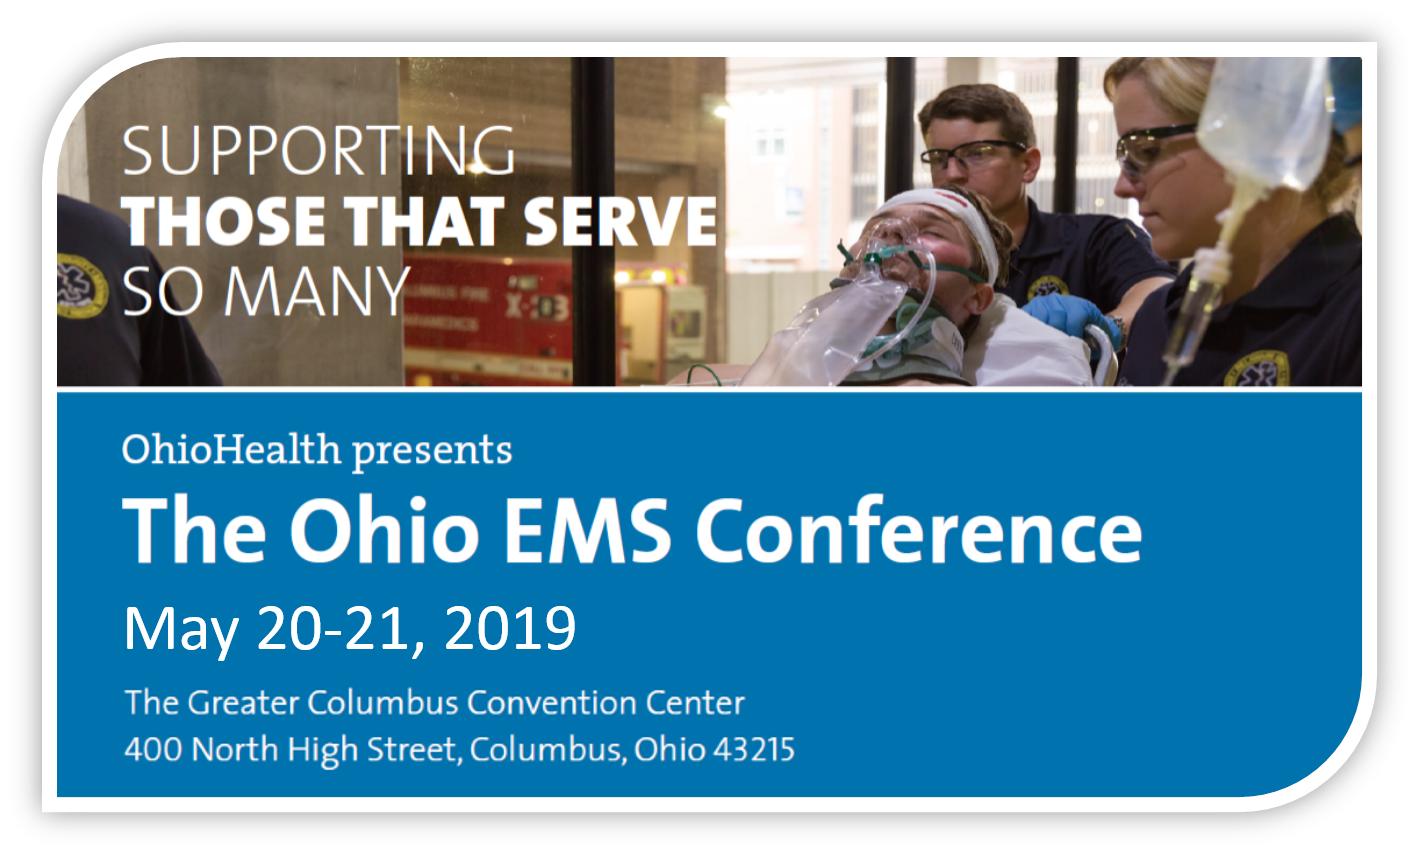 The Ohio EMS Conference event flyer